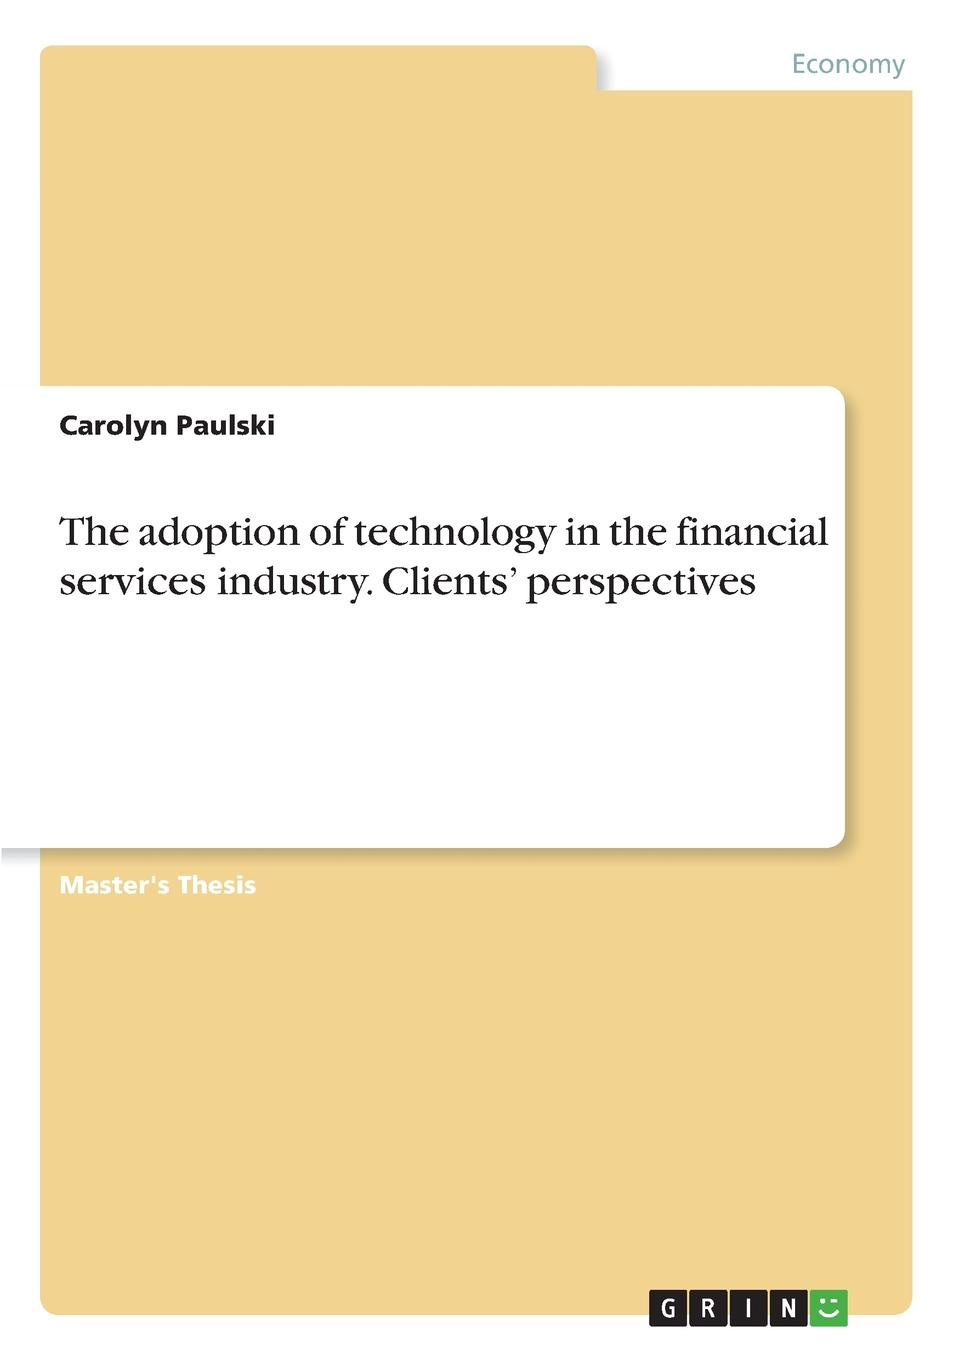 Carolyn Paulski The adoption of technology in the financial services industry. Clients. perspectives fotios pasiouras efficiency and productivity growth modelling in the financial services industry